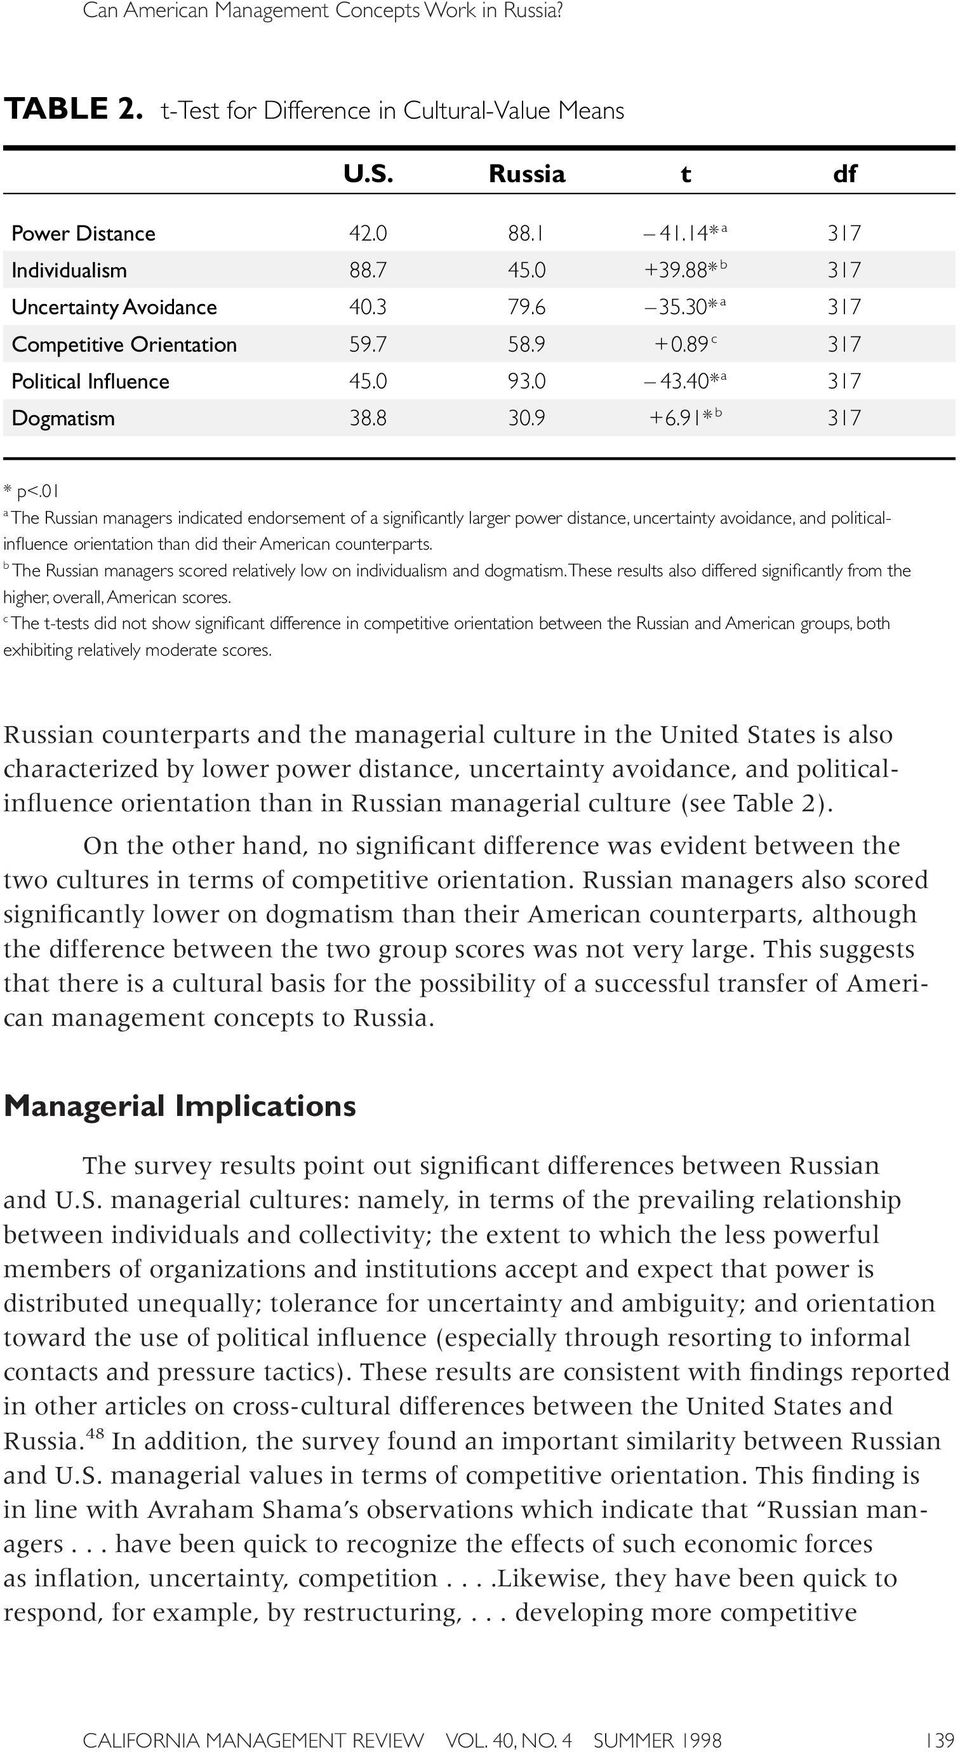 01 a The Russian managers indicated endorsement of a significantly larger power distance, uncertainty avoidance, and politicalinfluence orientation than did their American counterparts.